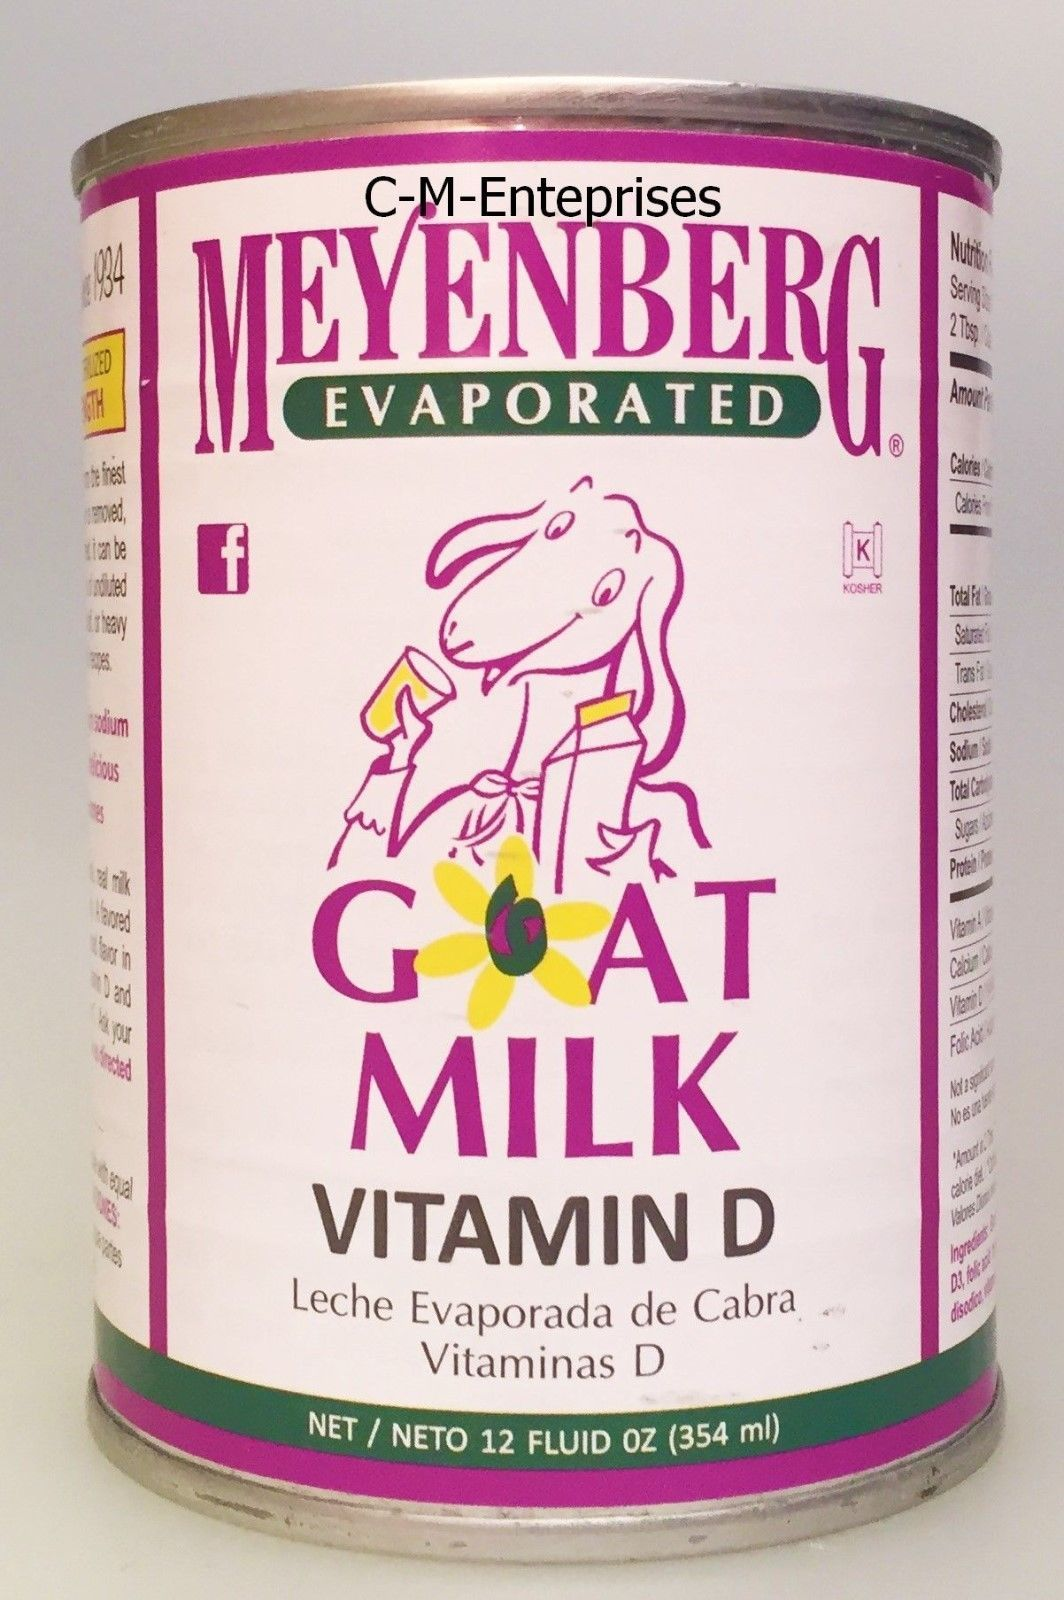 Meyenberg Evaporated Vitamin D Goat Milk 12 oz can